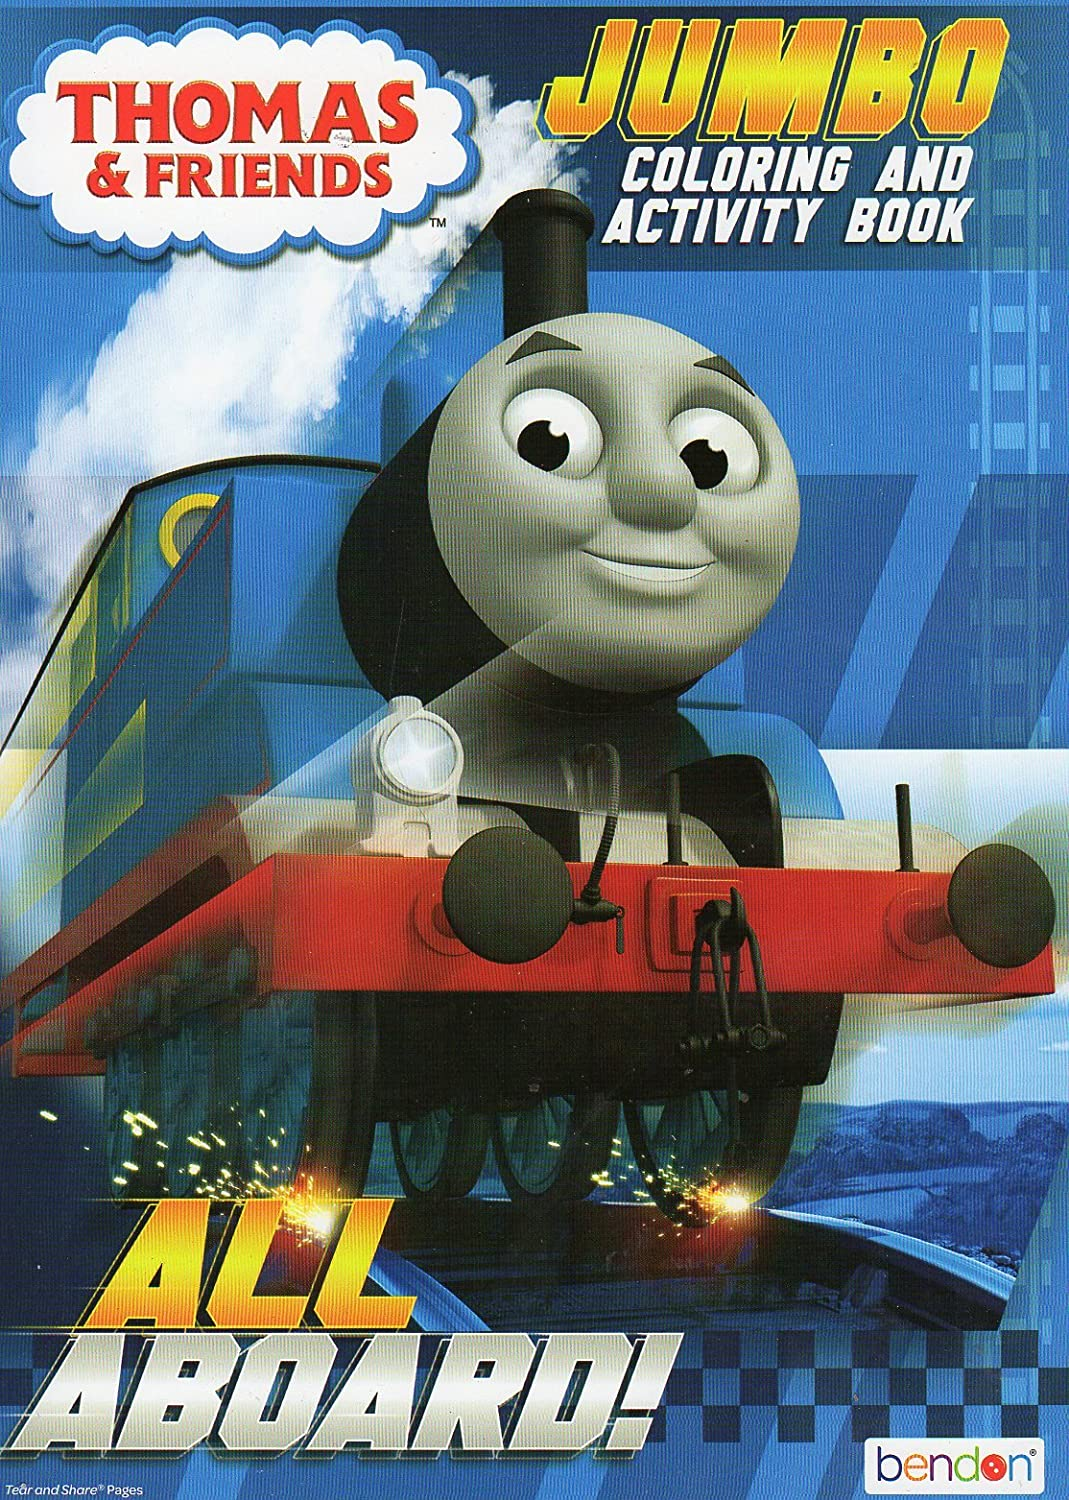 - Amazon.com: All Aboard! (Thomas & Friends) Coloring And Activity